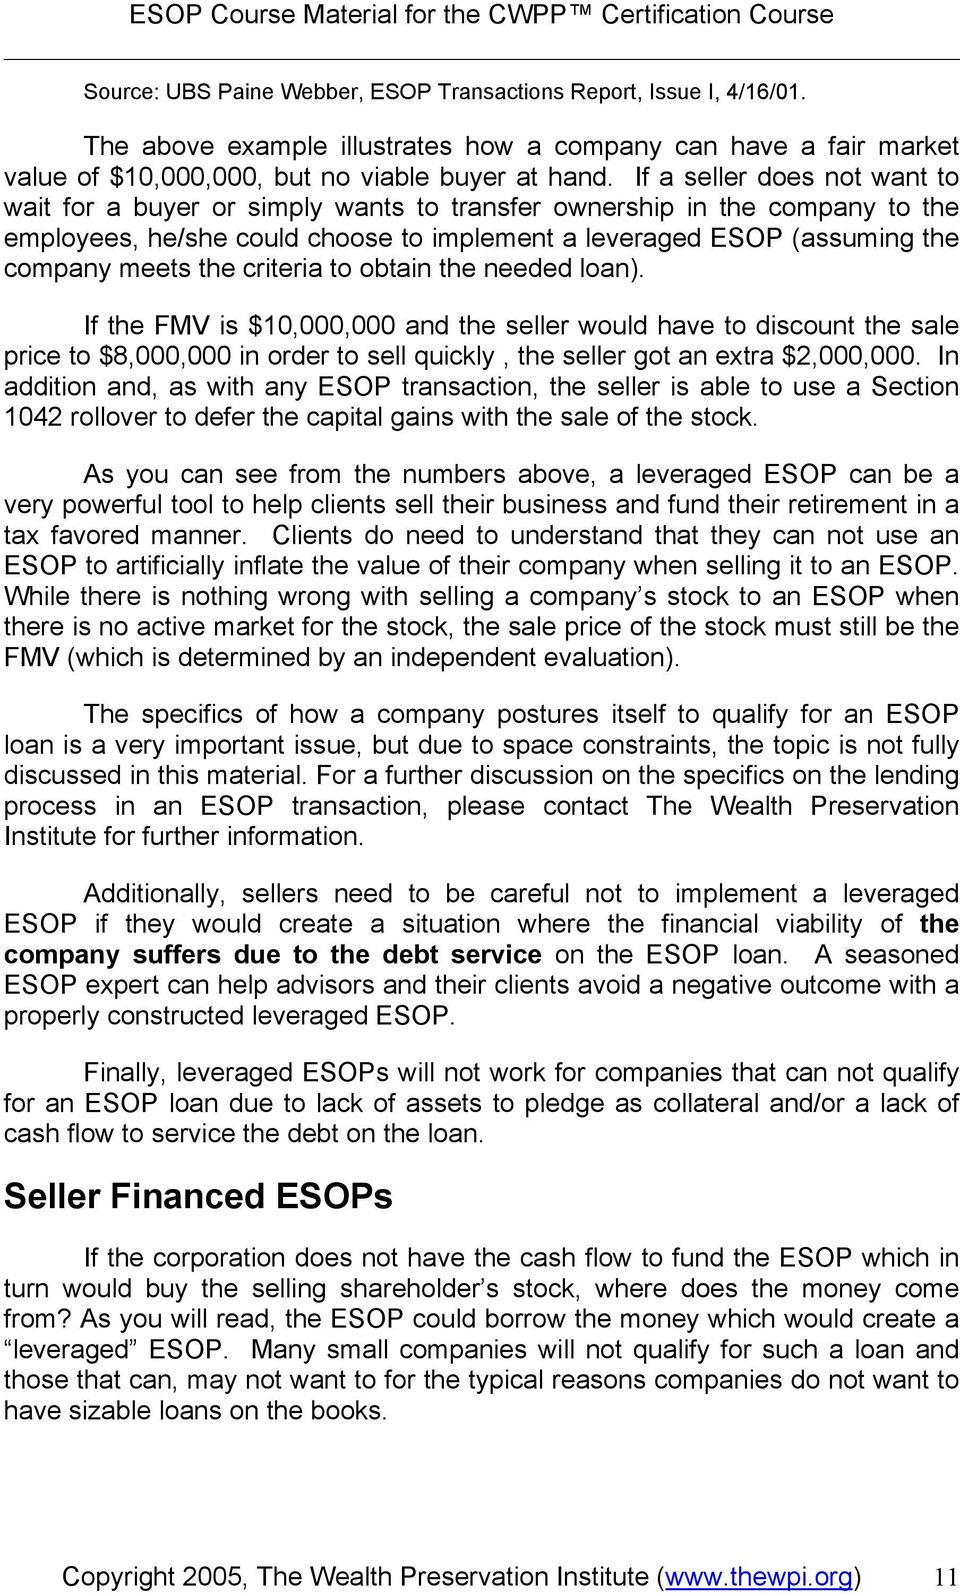 criteria to obtain the needed loan). If the FMV is $10,000,000 and the seller would have to discount the sale price to $8,000,000 in order to sell quickly, the seller got an extra $2,000,000.